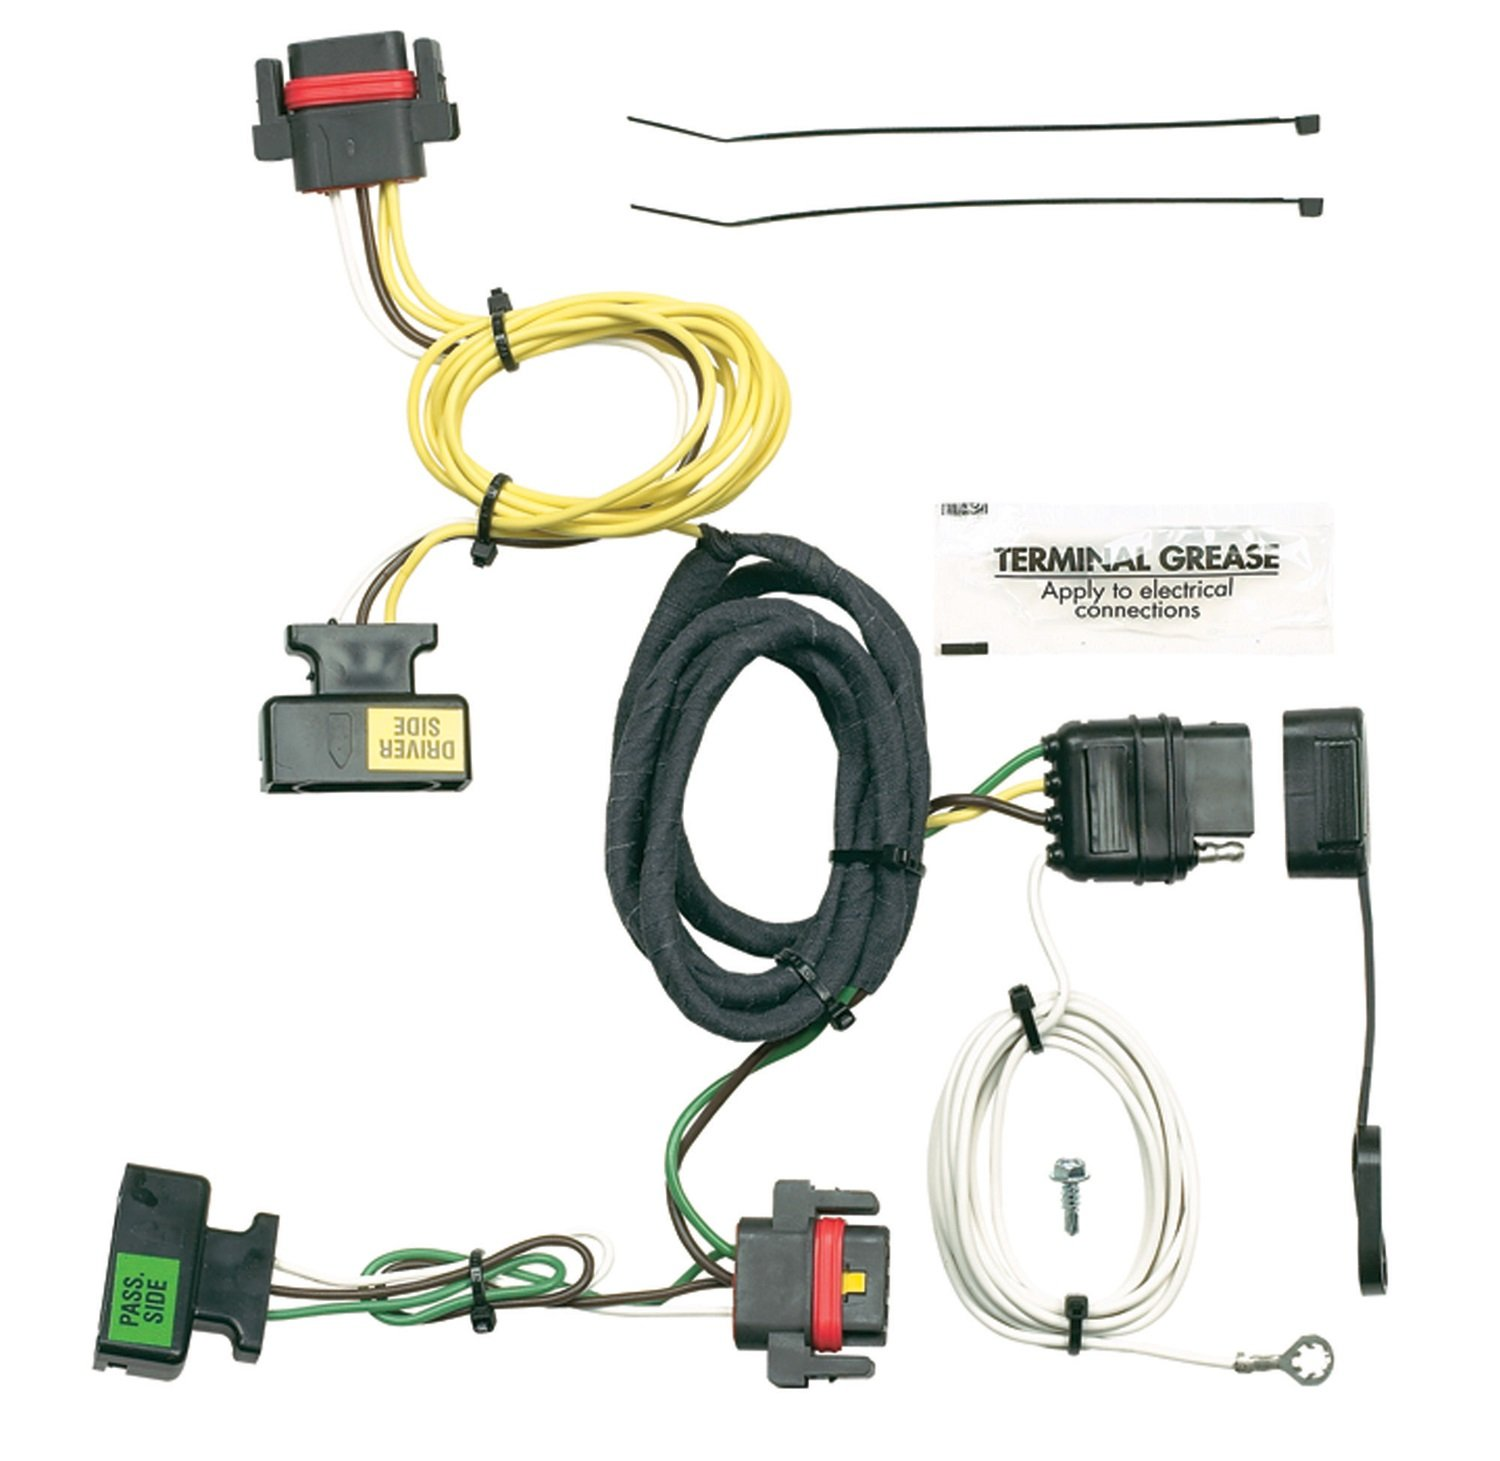 Plymouth Tail Light Wiring Harness Manual Guide Diagram 4 Wire Trailer Amazon Com Hopkins 42205 Plug In Simple Vehicle Kit Automotive Rh For A 65 El Camino